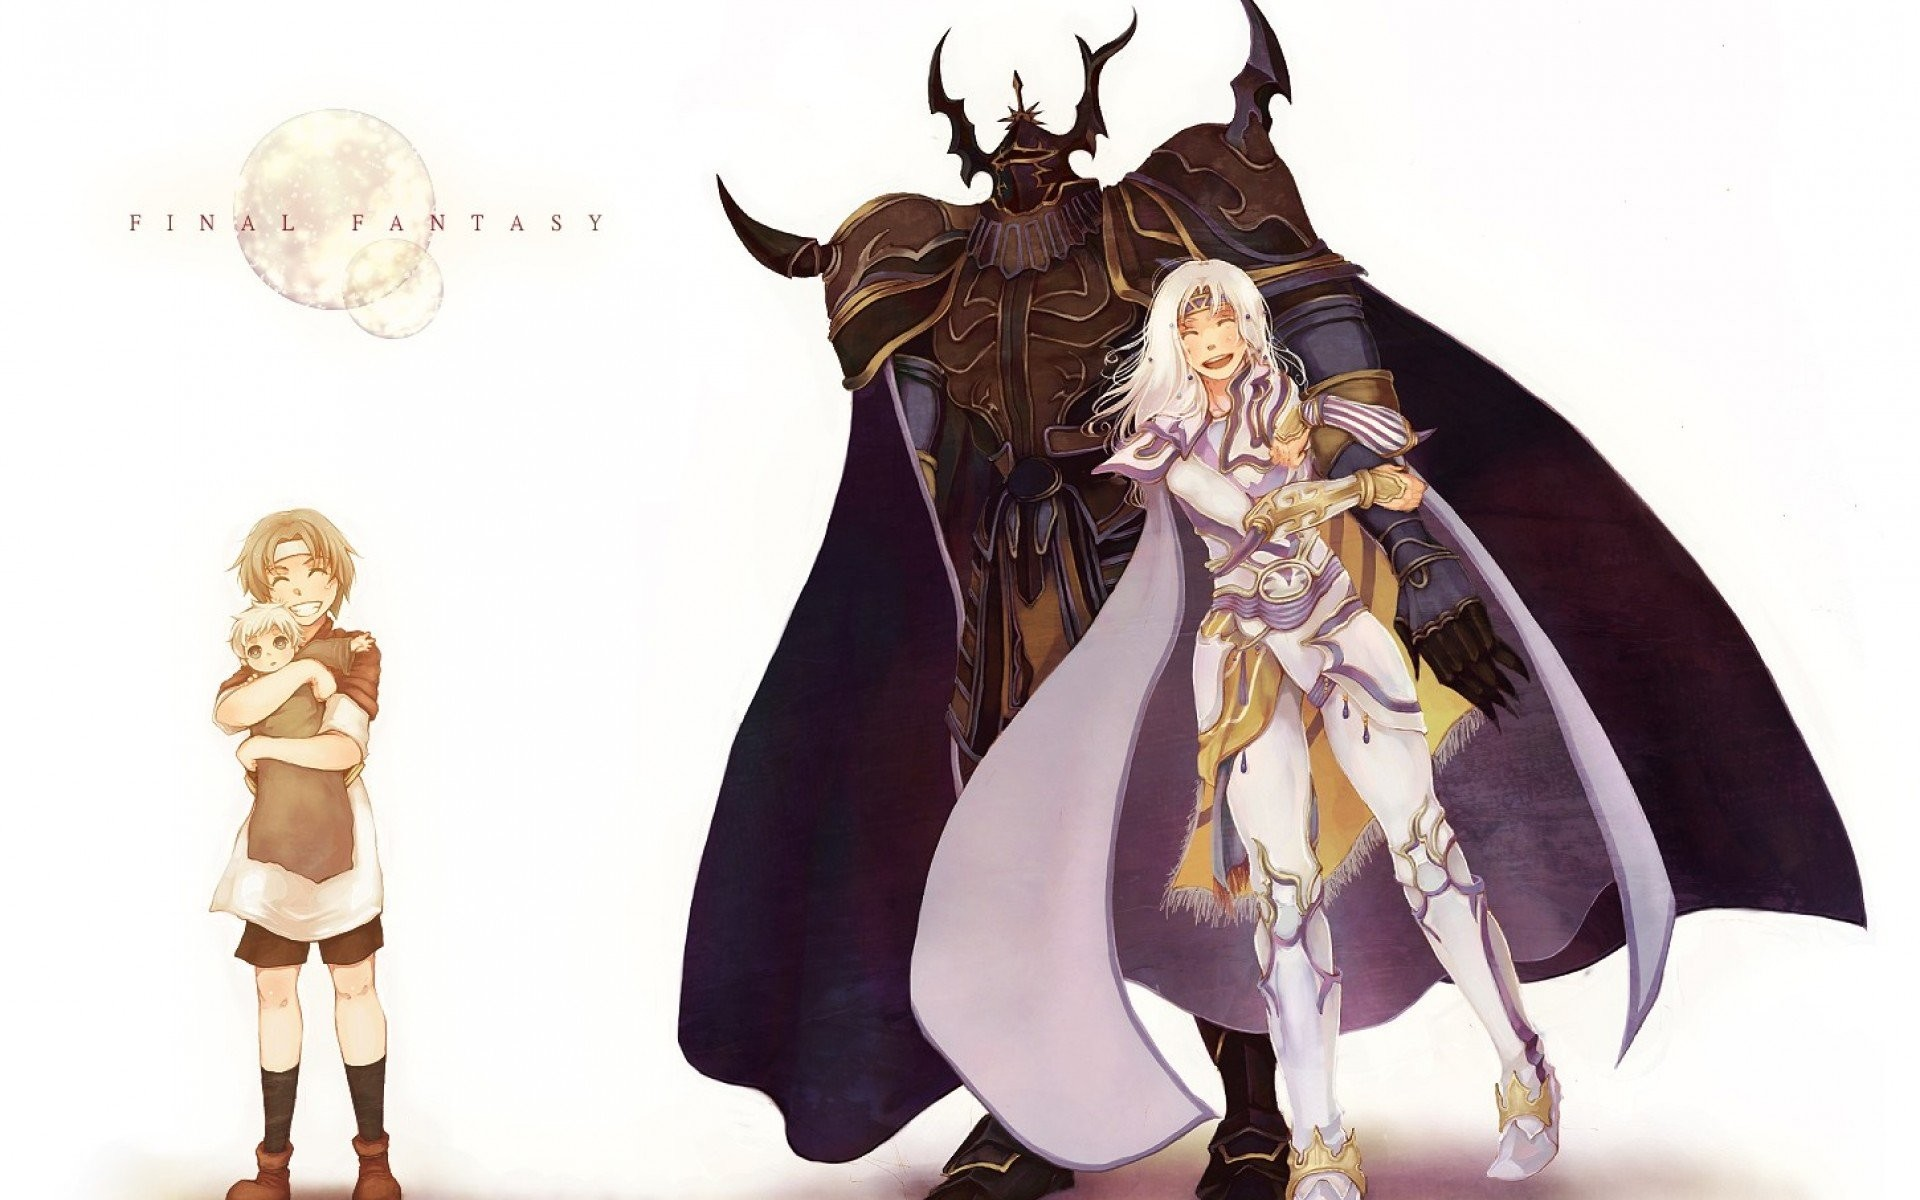 Final Fantasy Iv Cecil Data Src Final Fantasy Amano Yoshitaka 1920x1200 Wallpaper Teahub Io